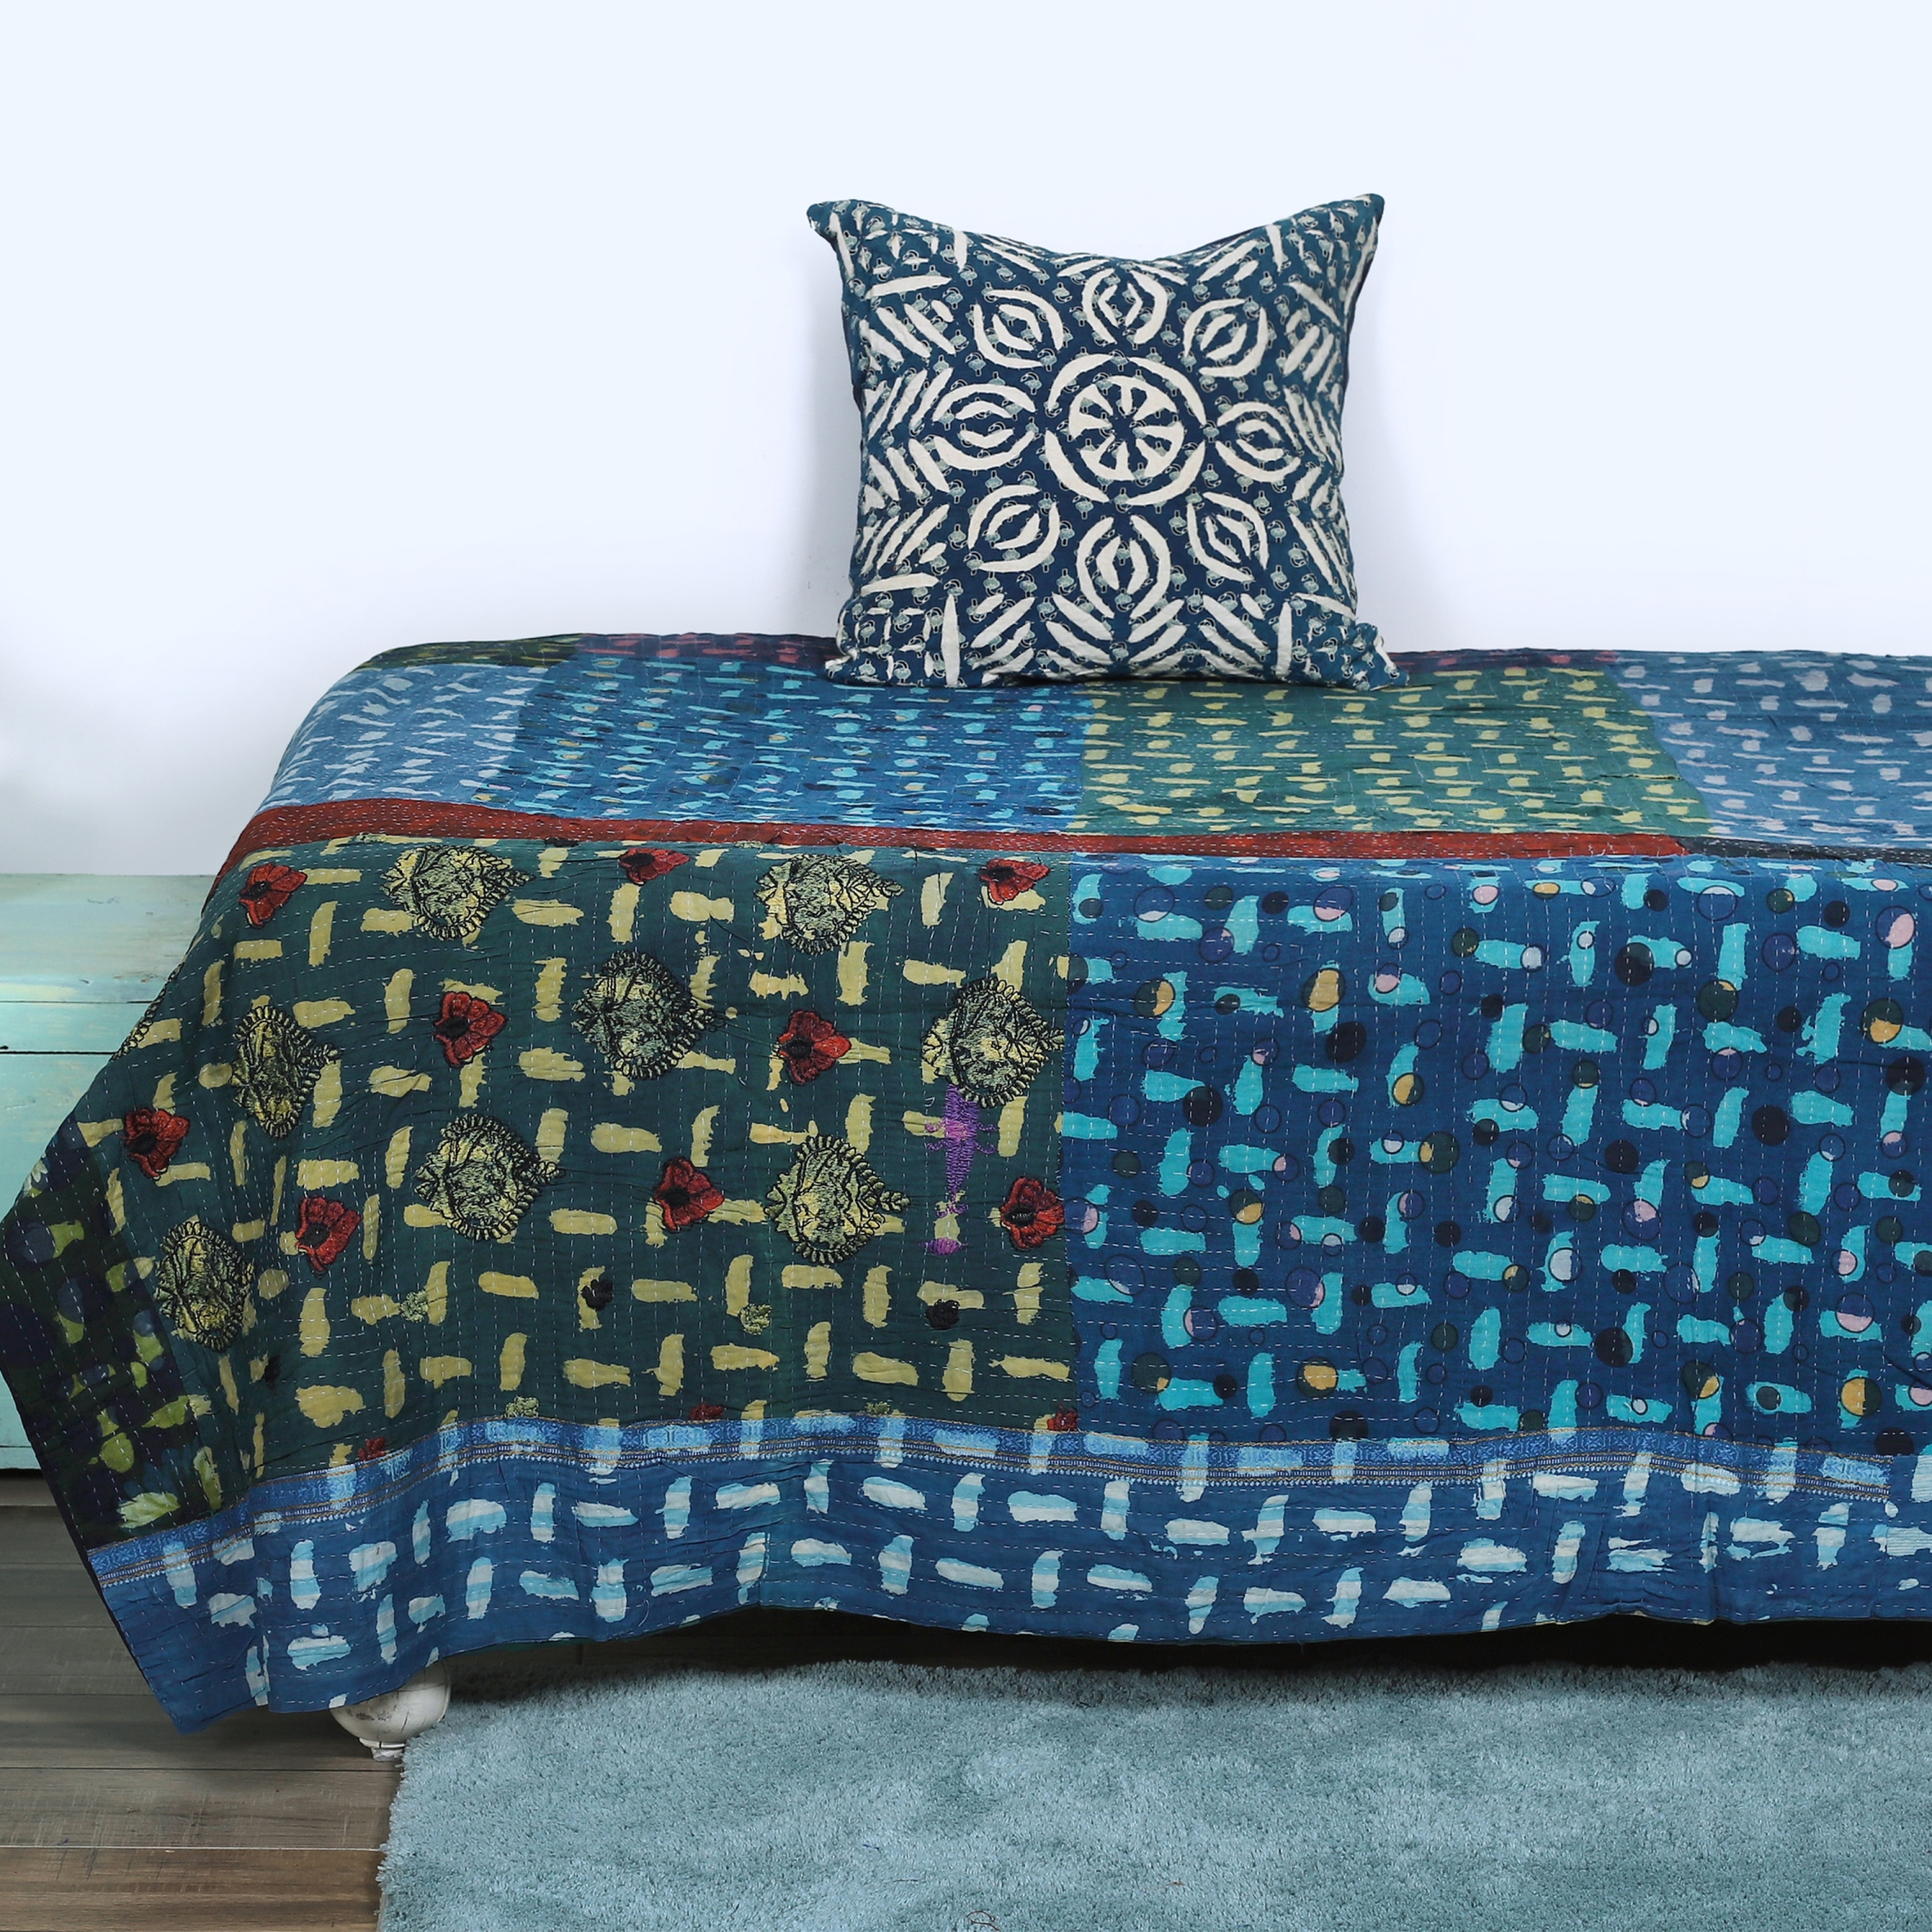 Bedspread Cotton Blanket Vintage Quilt Throw Ralli Gudari Handmade Kantha Quilt Meticulous Dyeing Processes Decorative Quilts & Bedspreads Home, Furniture & Diy